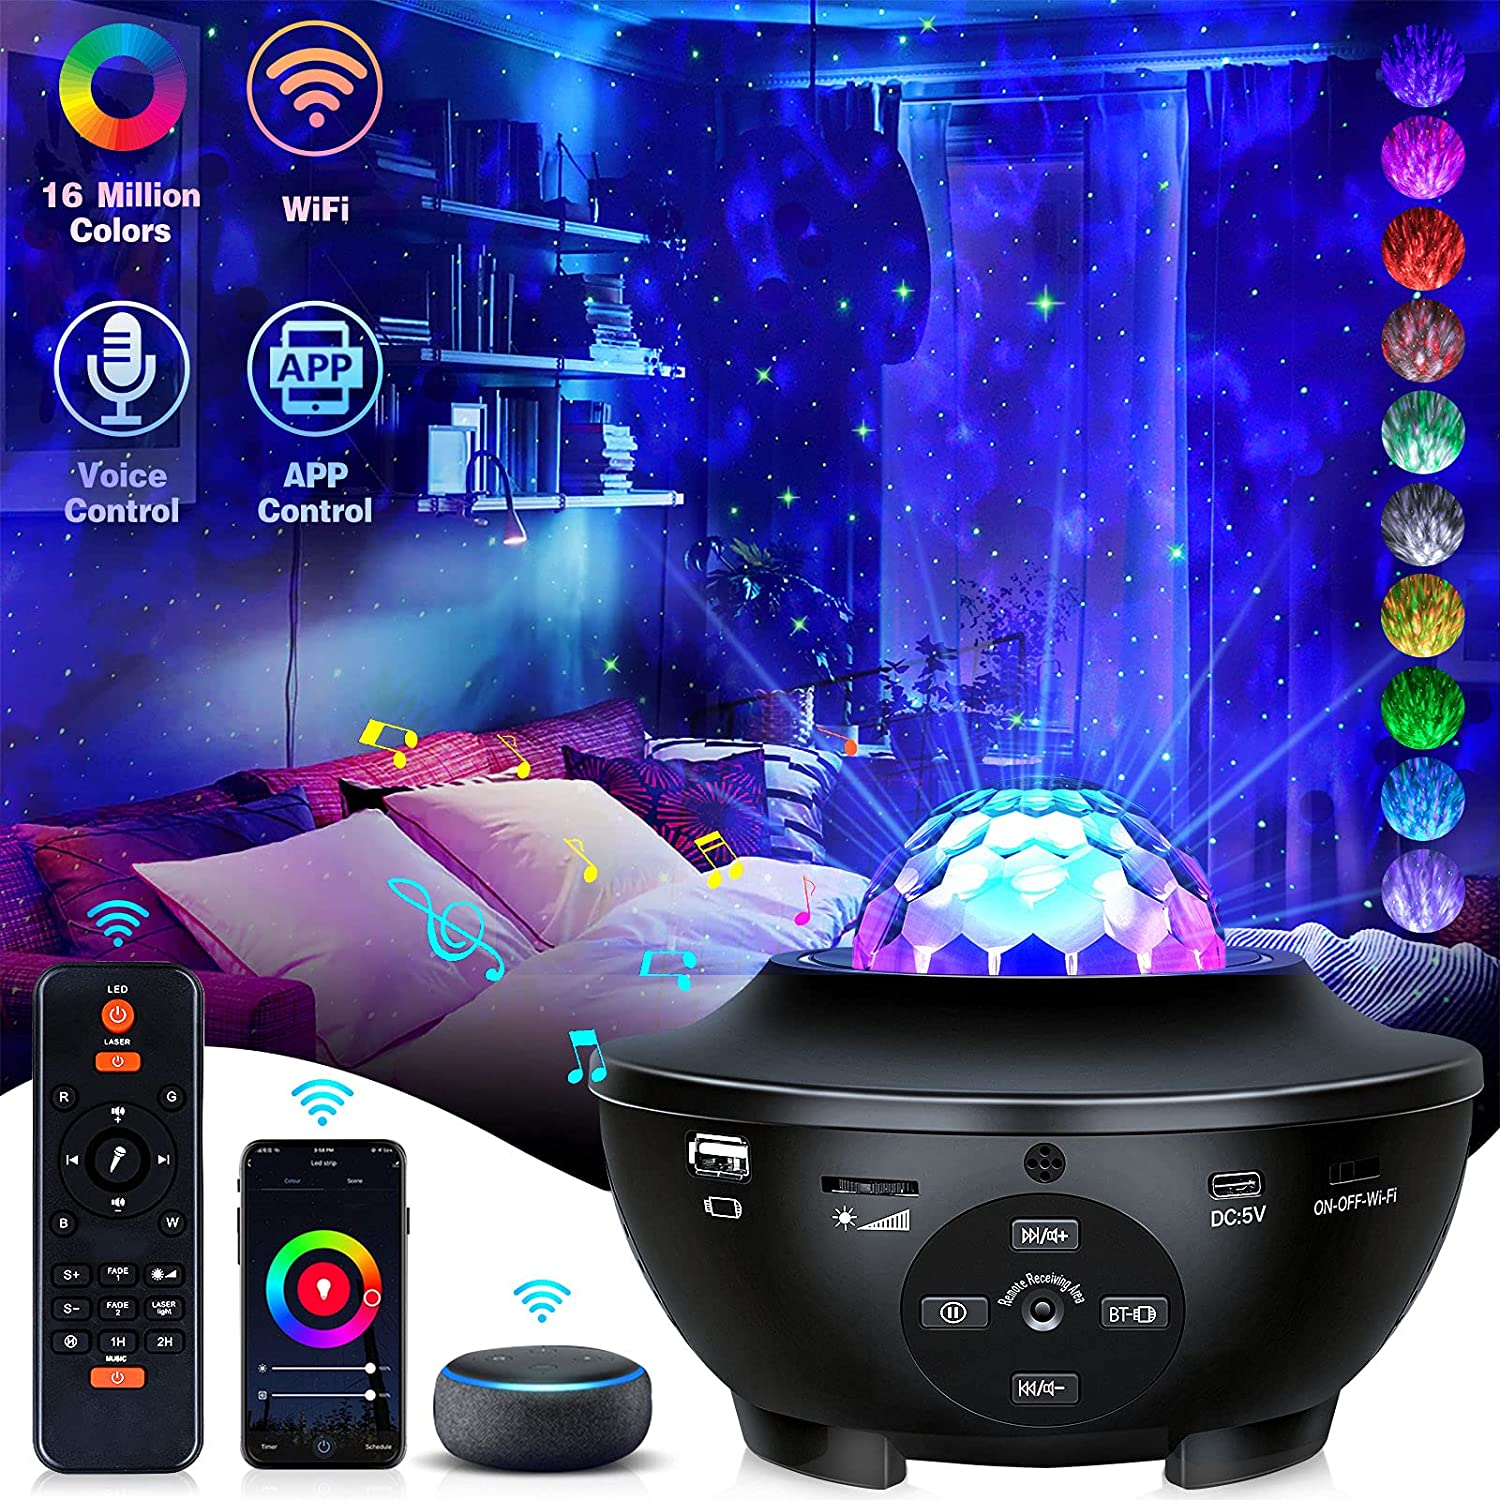 Galaxy Projector Star Projector Night Light with Bluetooth Music Speaker and Remote Control Smart APP Work with Alexa Google Home Star Galaxy 360 Pro Projector for Ceiling Bedroom for Baby Kids Adult